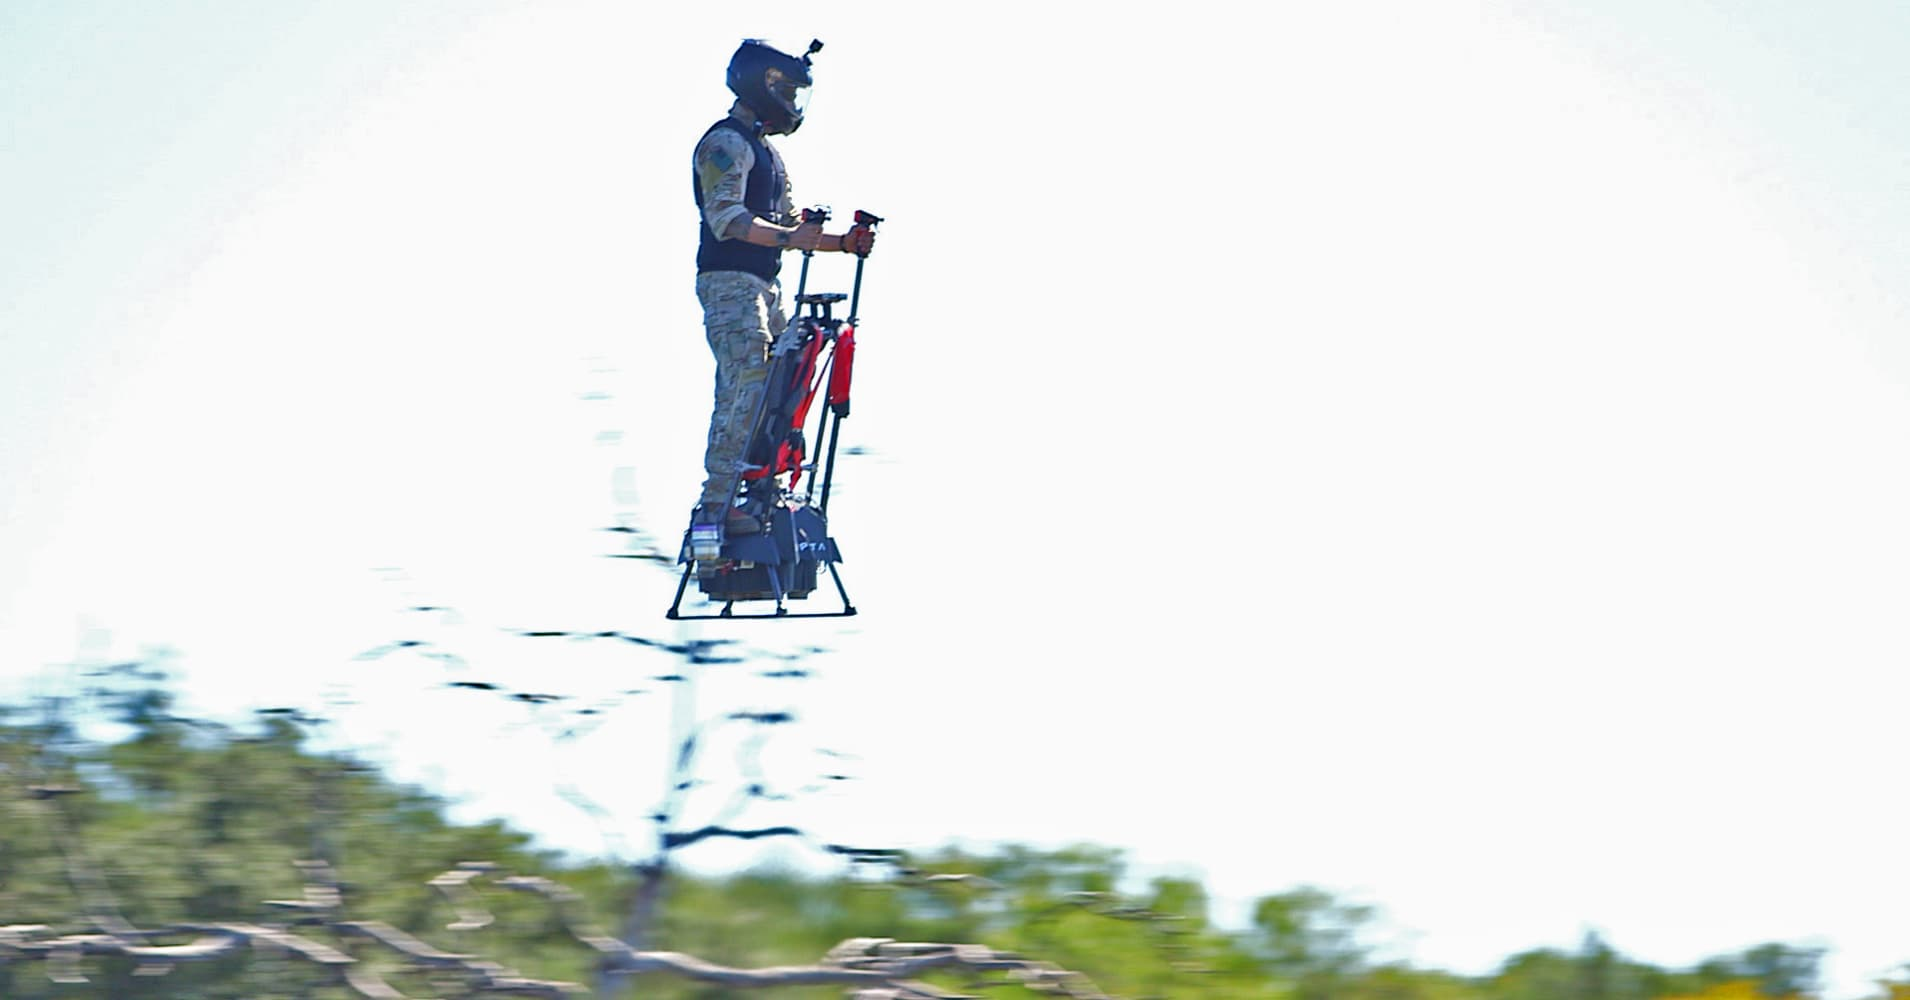 Finally, someone has designed a real flying hoverboard — and it flies at 80mph